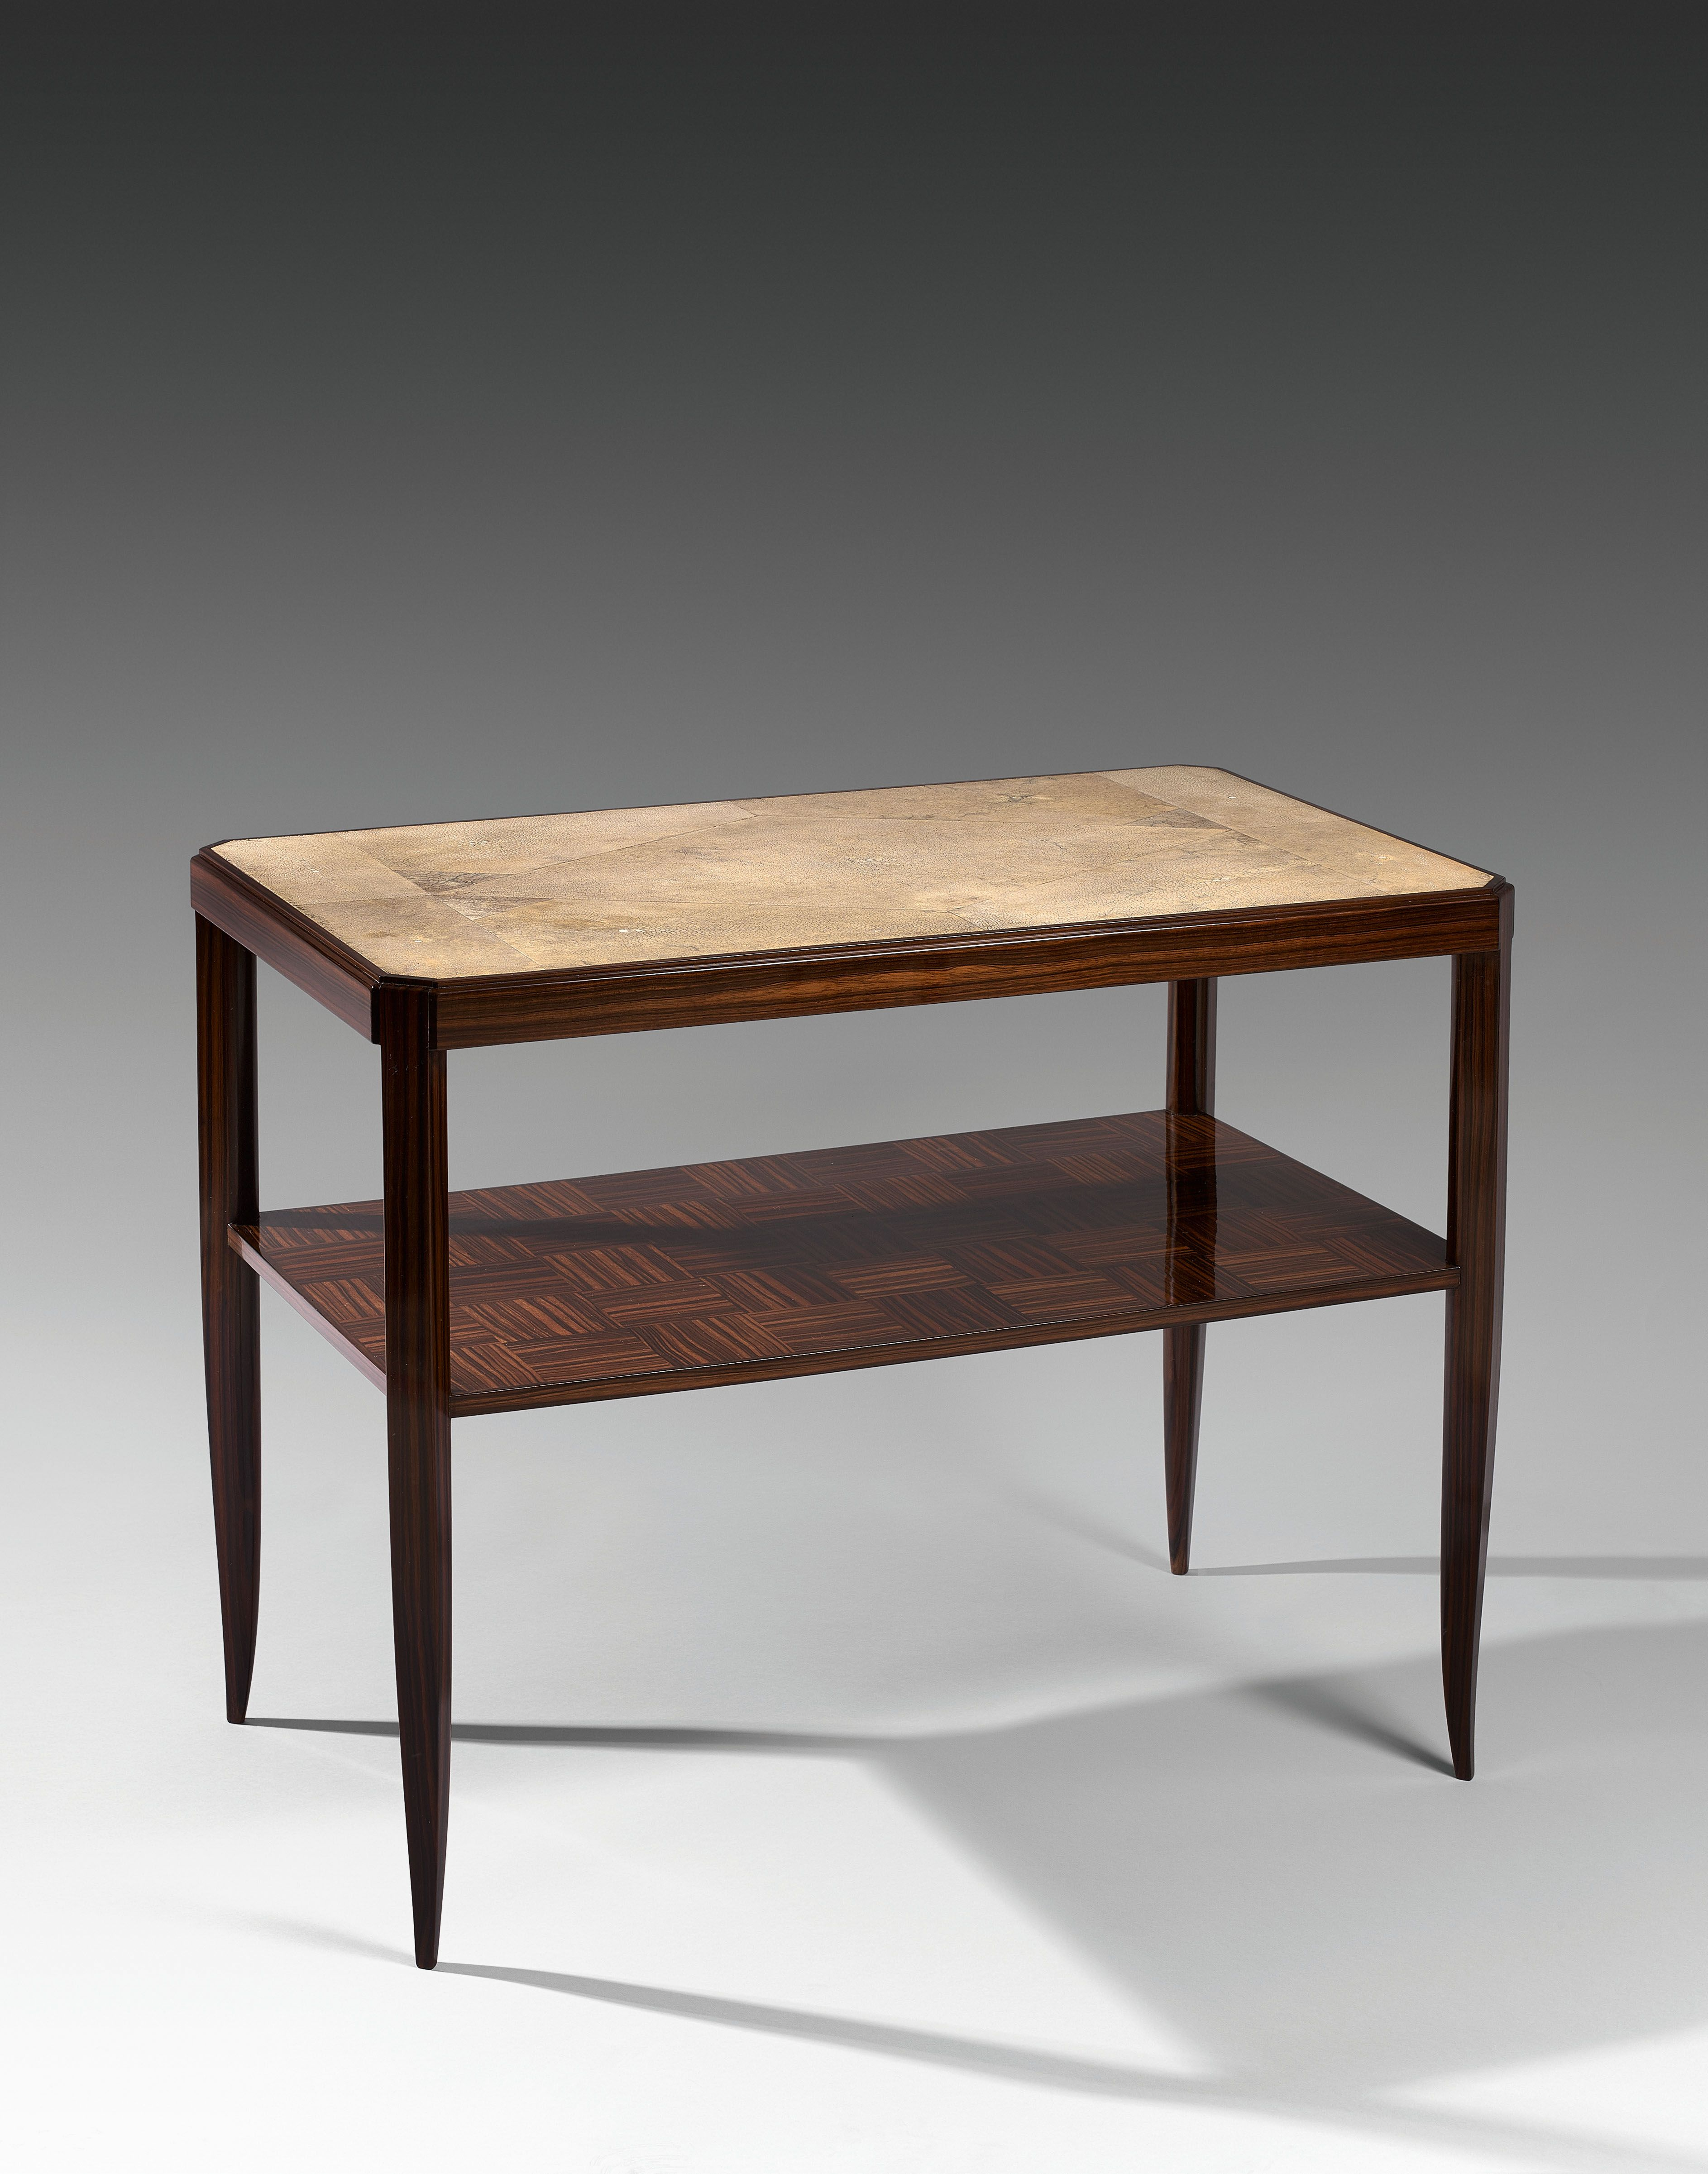 Art Deco Side Table By Leon Jallot Archives Image Vosges Manufactures Luxury And Tailor Made Art Deco Style Seating Lighting And Furniture Artdecotable Art